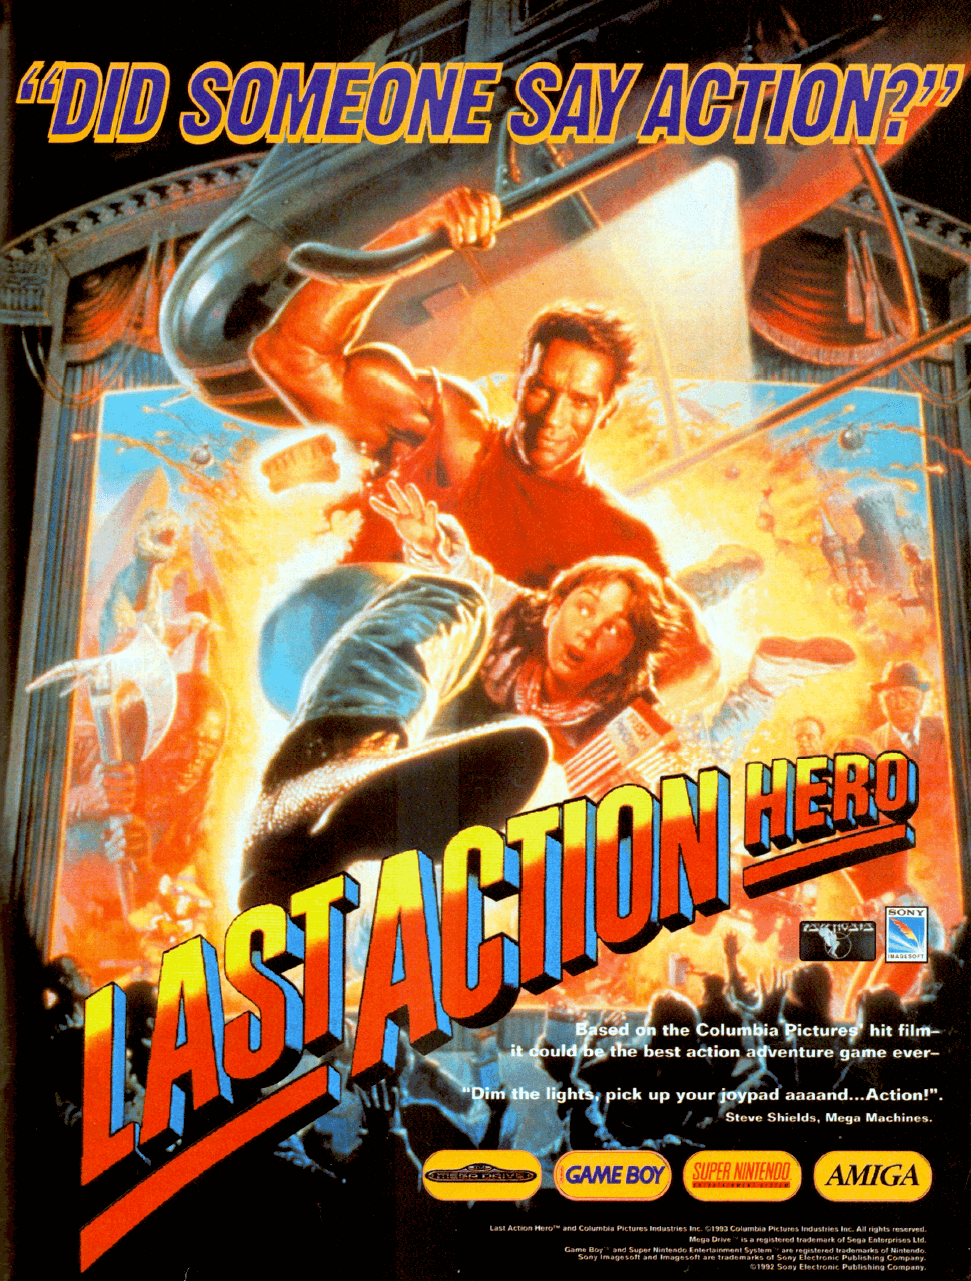 """Image For Post   **Description**   The 16-bit console version of the movie license Last Action Hero combines side-scrolling beat'em up levels with driving sequences.  Players control action hero Jack Slater through four beat'em up levels. The first two are inspired by the beginning sequence of the movie (the finale of """"Jack Slater III""""), the third by the hotel funeral inside the movie world, and the last by the premiere of """"Jack Slater IV"""" in the real world. Slater must move to the level exit before the timer or his energy runs out. Various goons stand in his way and must be defeated through kicks or punches.   There are four varieties of enemies in the game, wielding either knives, baseball bats, Molotov cocktails or guns. Spent life energy can be refilled by collecting movie tickets that sometimes fall from the sky. The Genesis version adds an additional twist in the first level: a crosshair will follow Slater around and randomly shoot bullets at him. All except the first stage end with a boss fight. Bosses include The Ripper, a helicopter and main villain Benedict.  The driving sequences are also seen from the side. Slater's car must avoid hitting cars and trucks parked on the road while trying to destroy enemy cars by jumping over a ramp and then landing on top of them.  Cutscenes tell the story of the film between levels, following the original plot only loosely."""